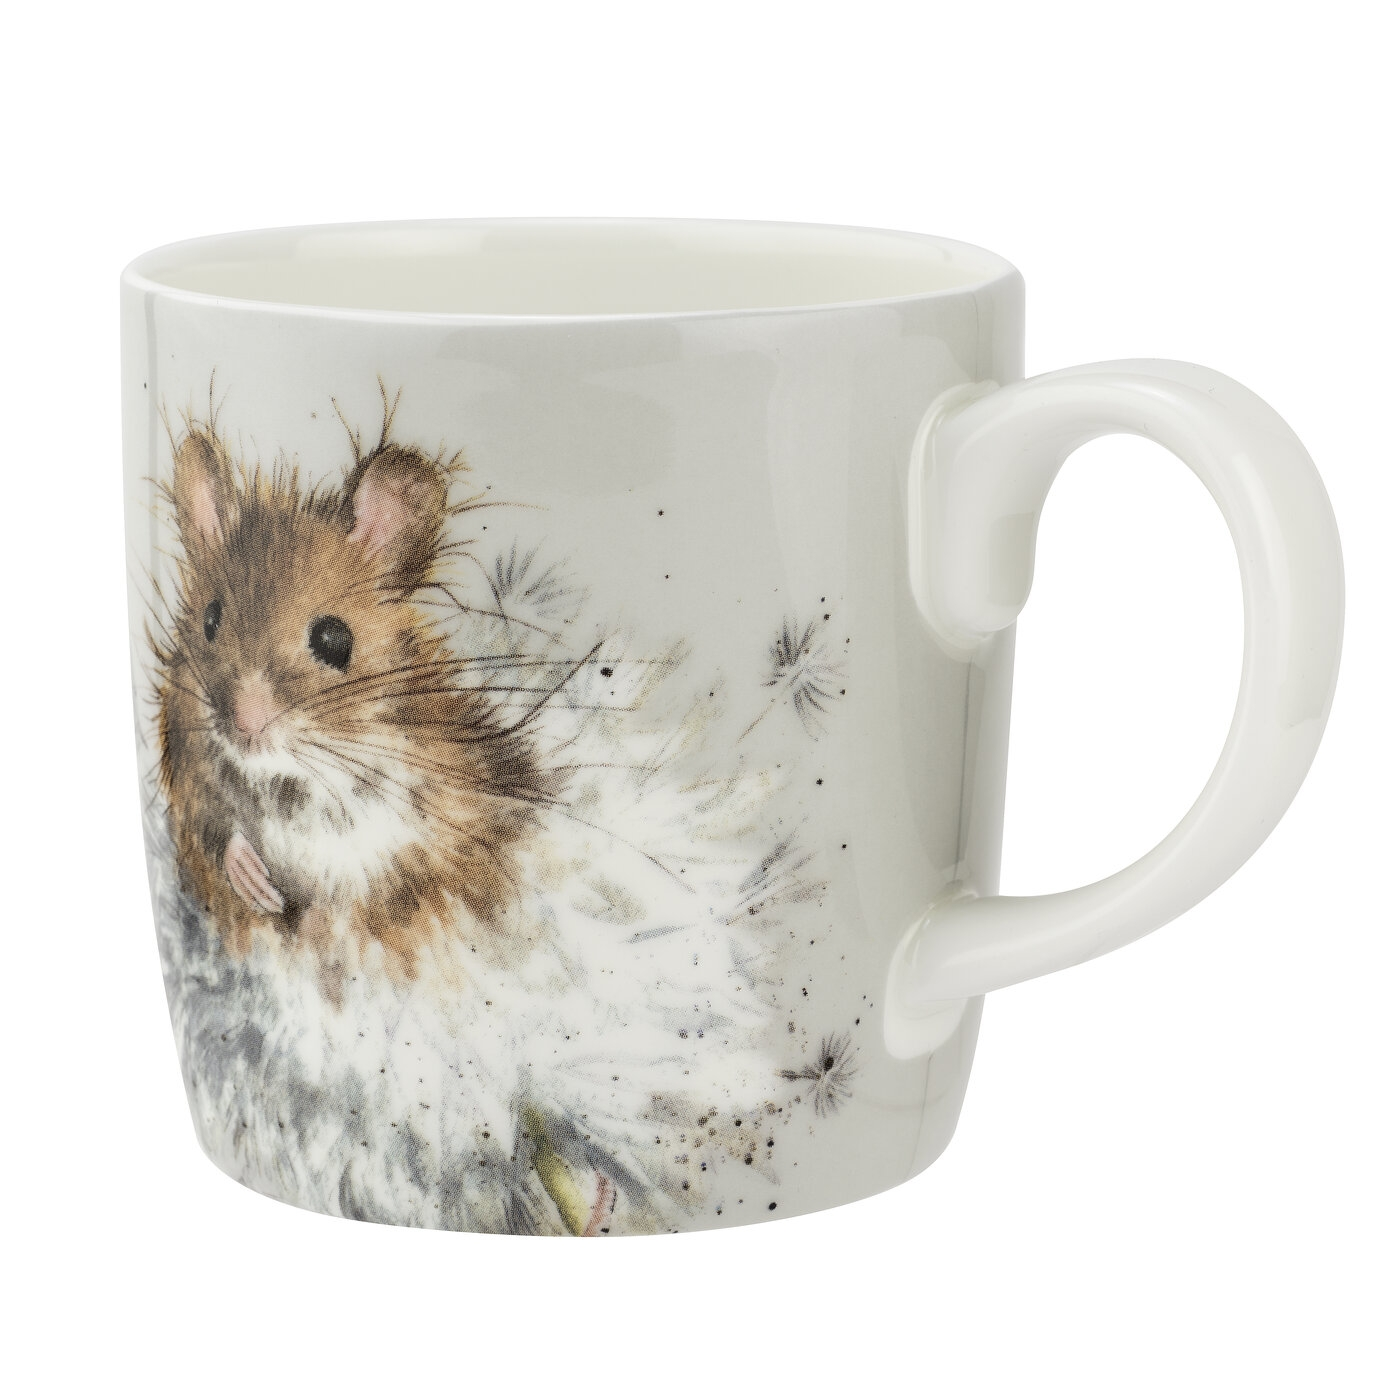 Royal Worcester Wrendale Designs 14oz Dandelion Mug (Mouse) image number 0